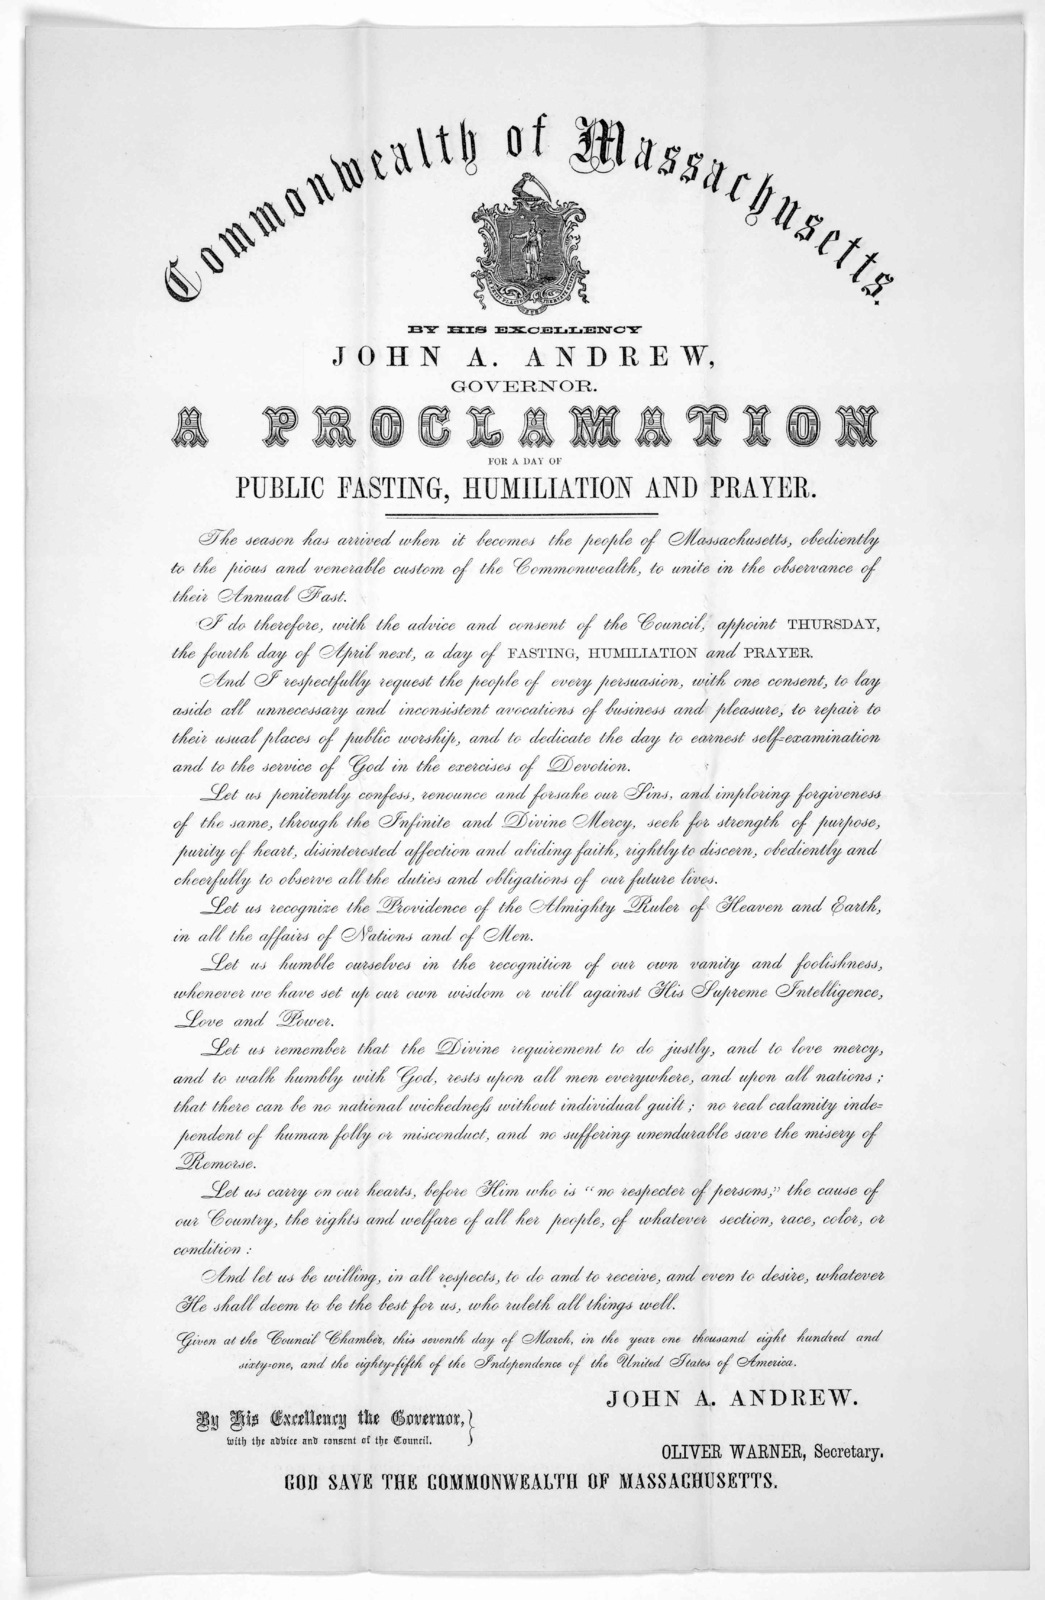 Commonwealth of Massachusetts. By His Excellency, John A. Andrews. Governor. A proclamation for a day of public fasting, humiliation and prayer ... appoint Thursday, the fourth day of April next, a day of fasting, humiliation and prayer ... Give